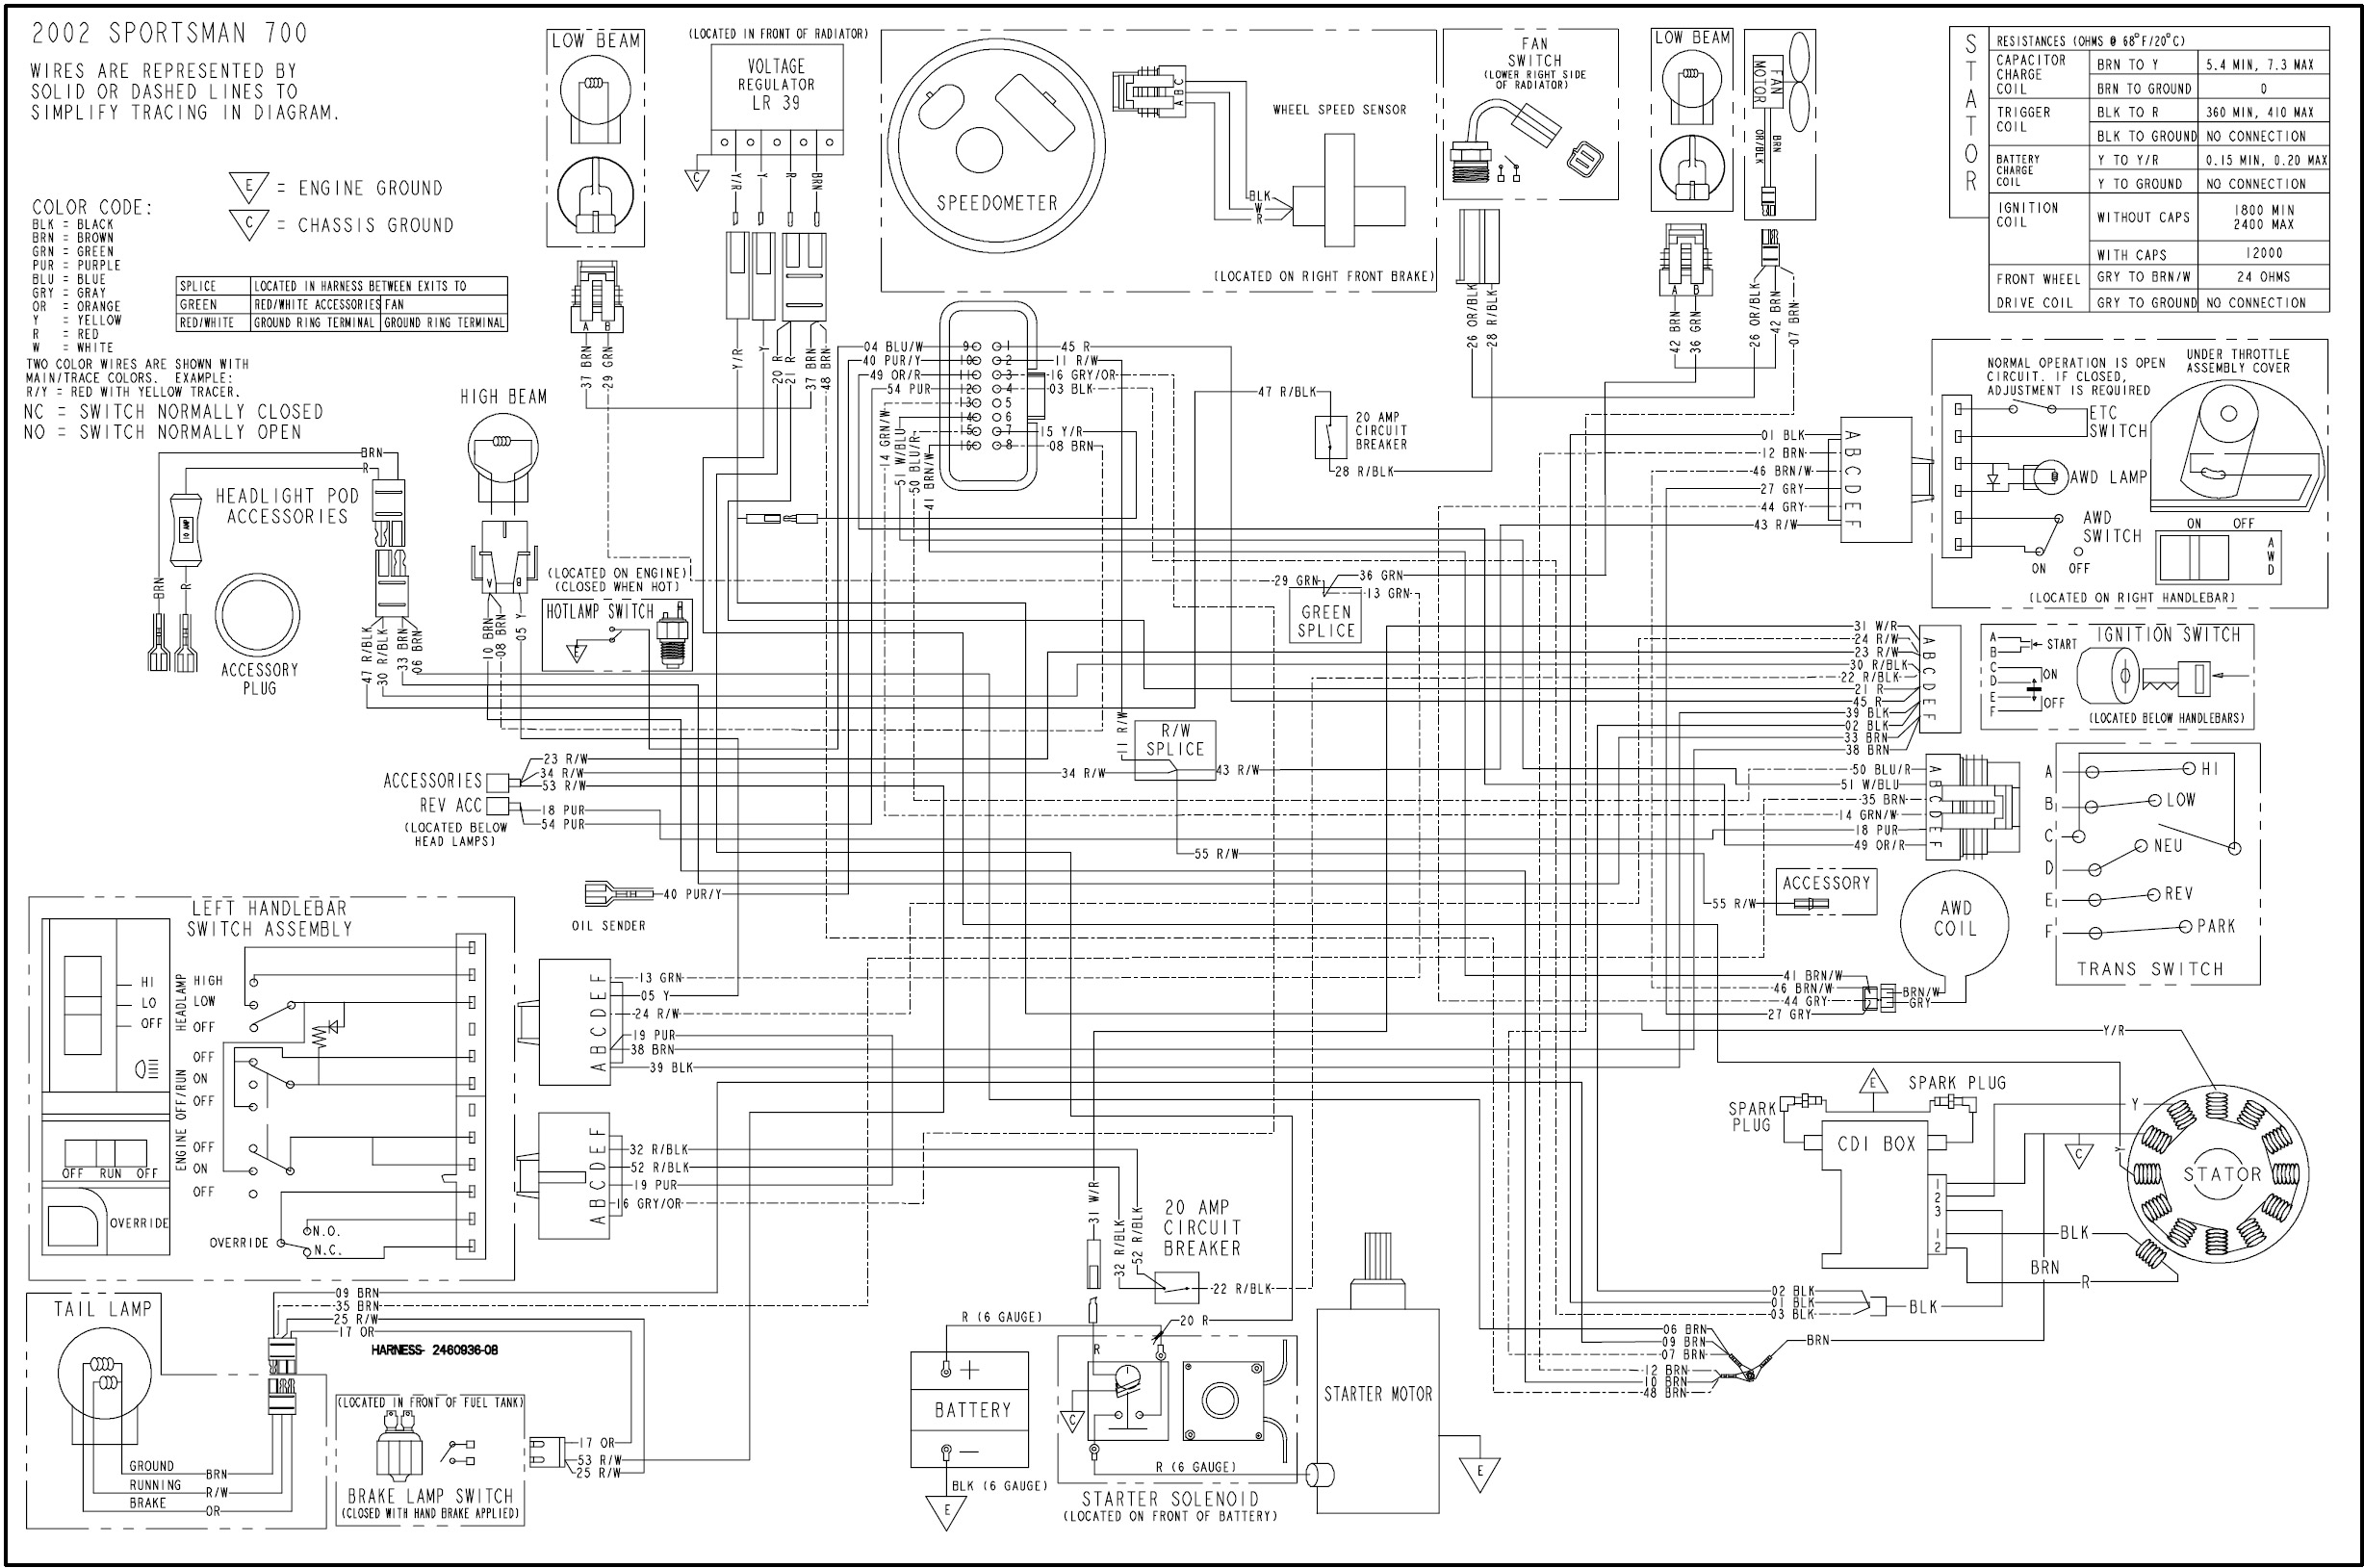 wd_700_02 wiring diagram 2003 polaris 600 atv readingrat net polaris 500 wiring diagram at gsmportal.co